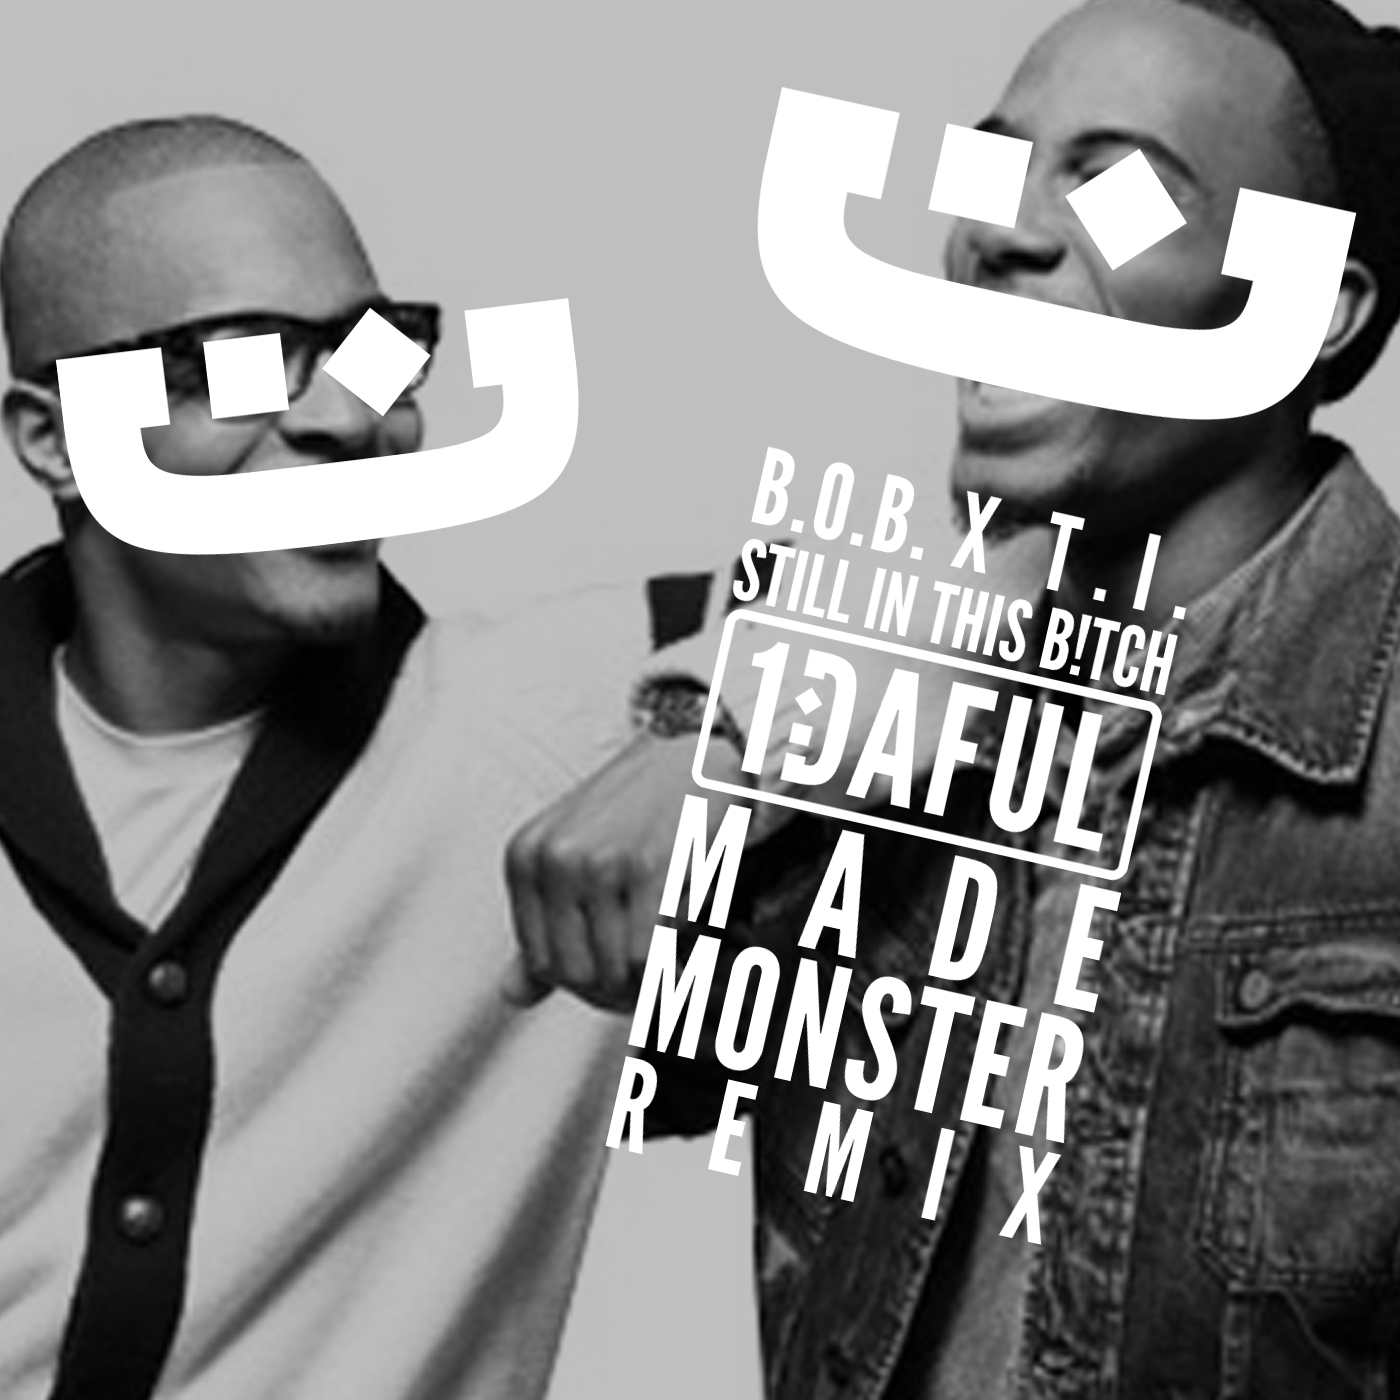 Still in This (1DAFUL X Made Monster Remix) - B.o.B & T.I. - Album Artwork